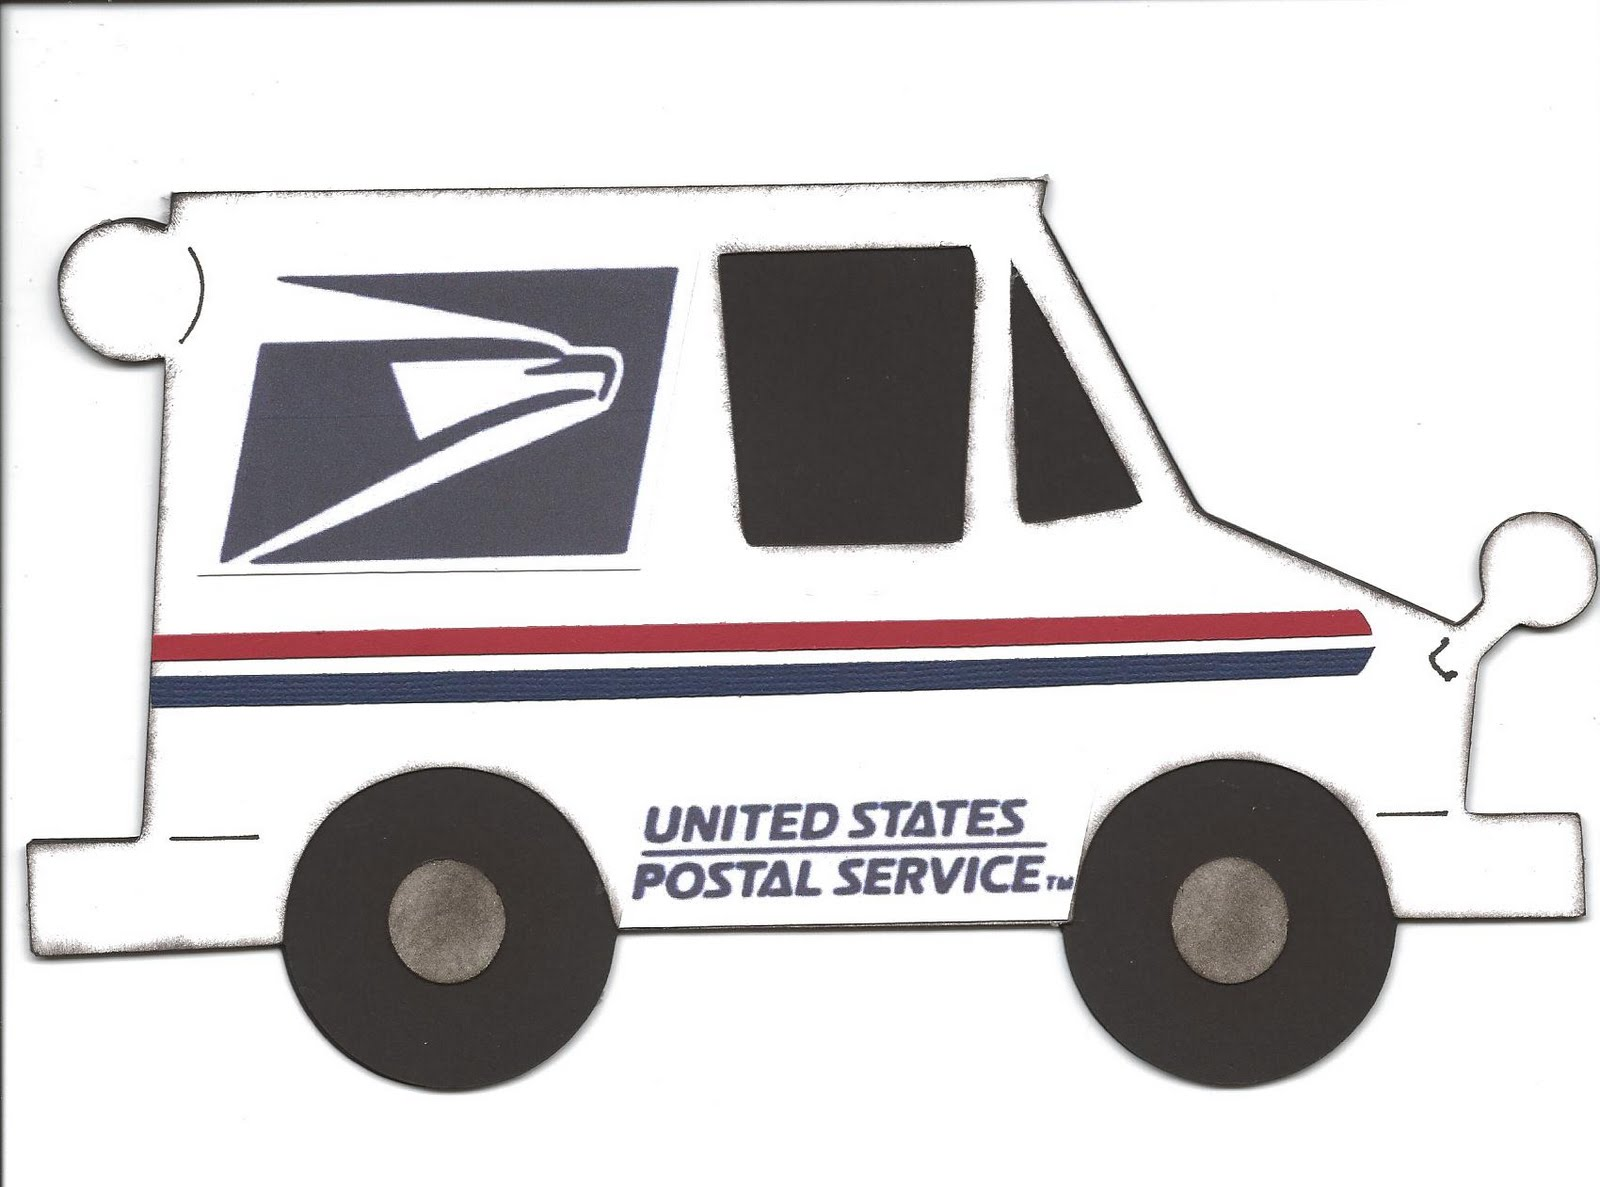 Usps airplane clipart vector stock Free Postal Cliparts, Download Free Clip Art, Free Clip Art ... vector stock